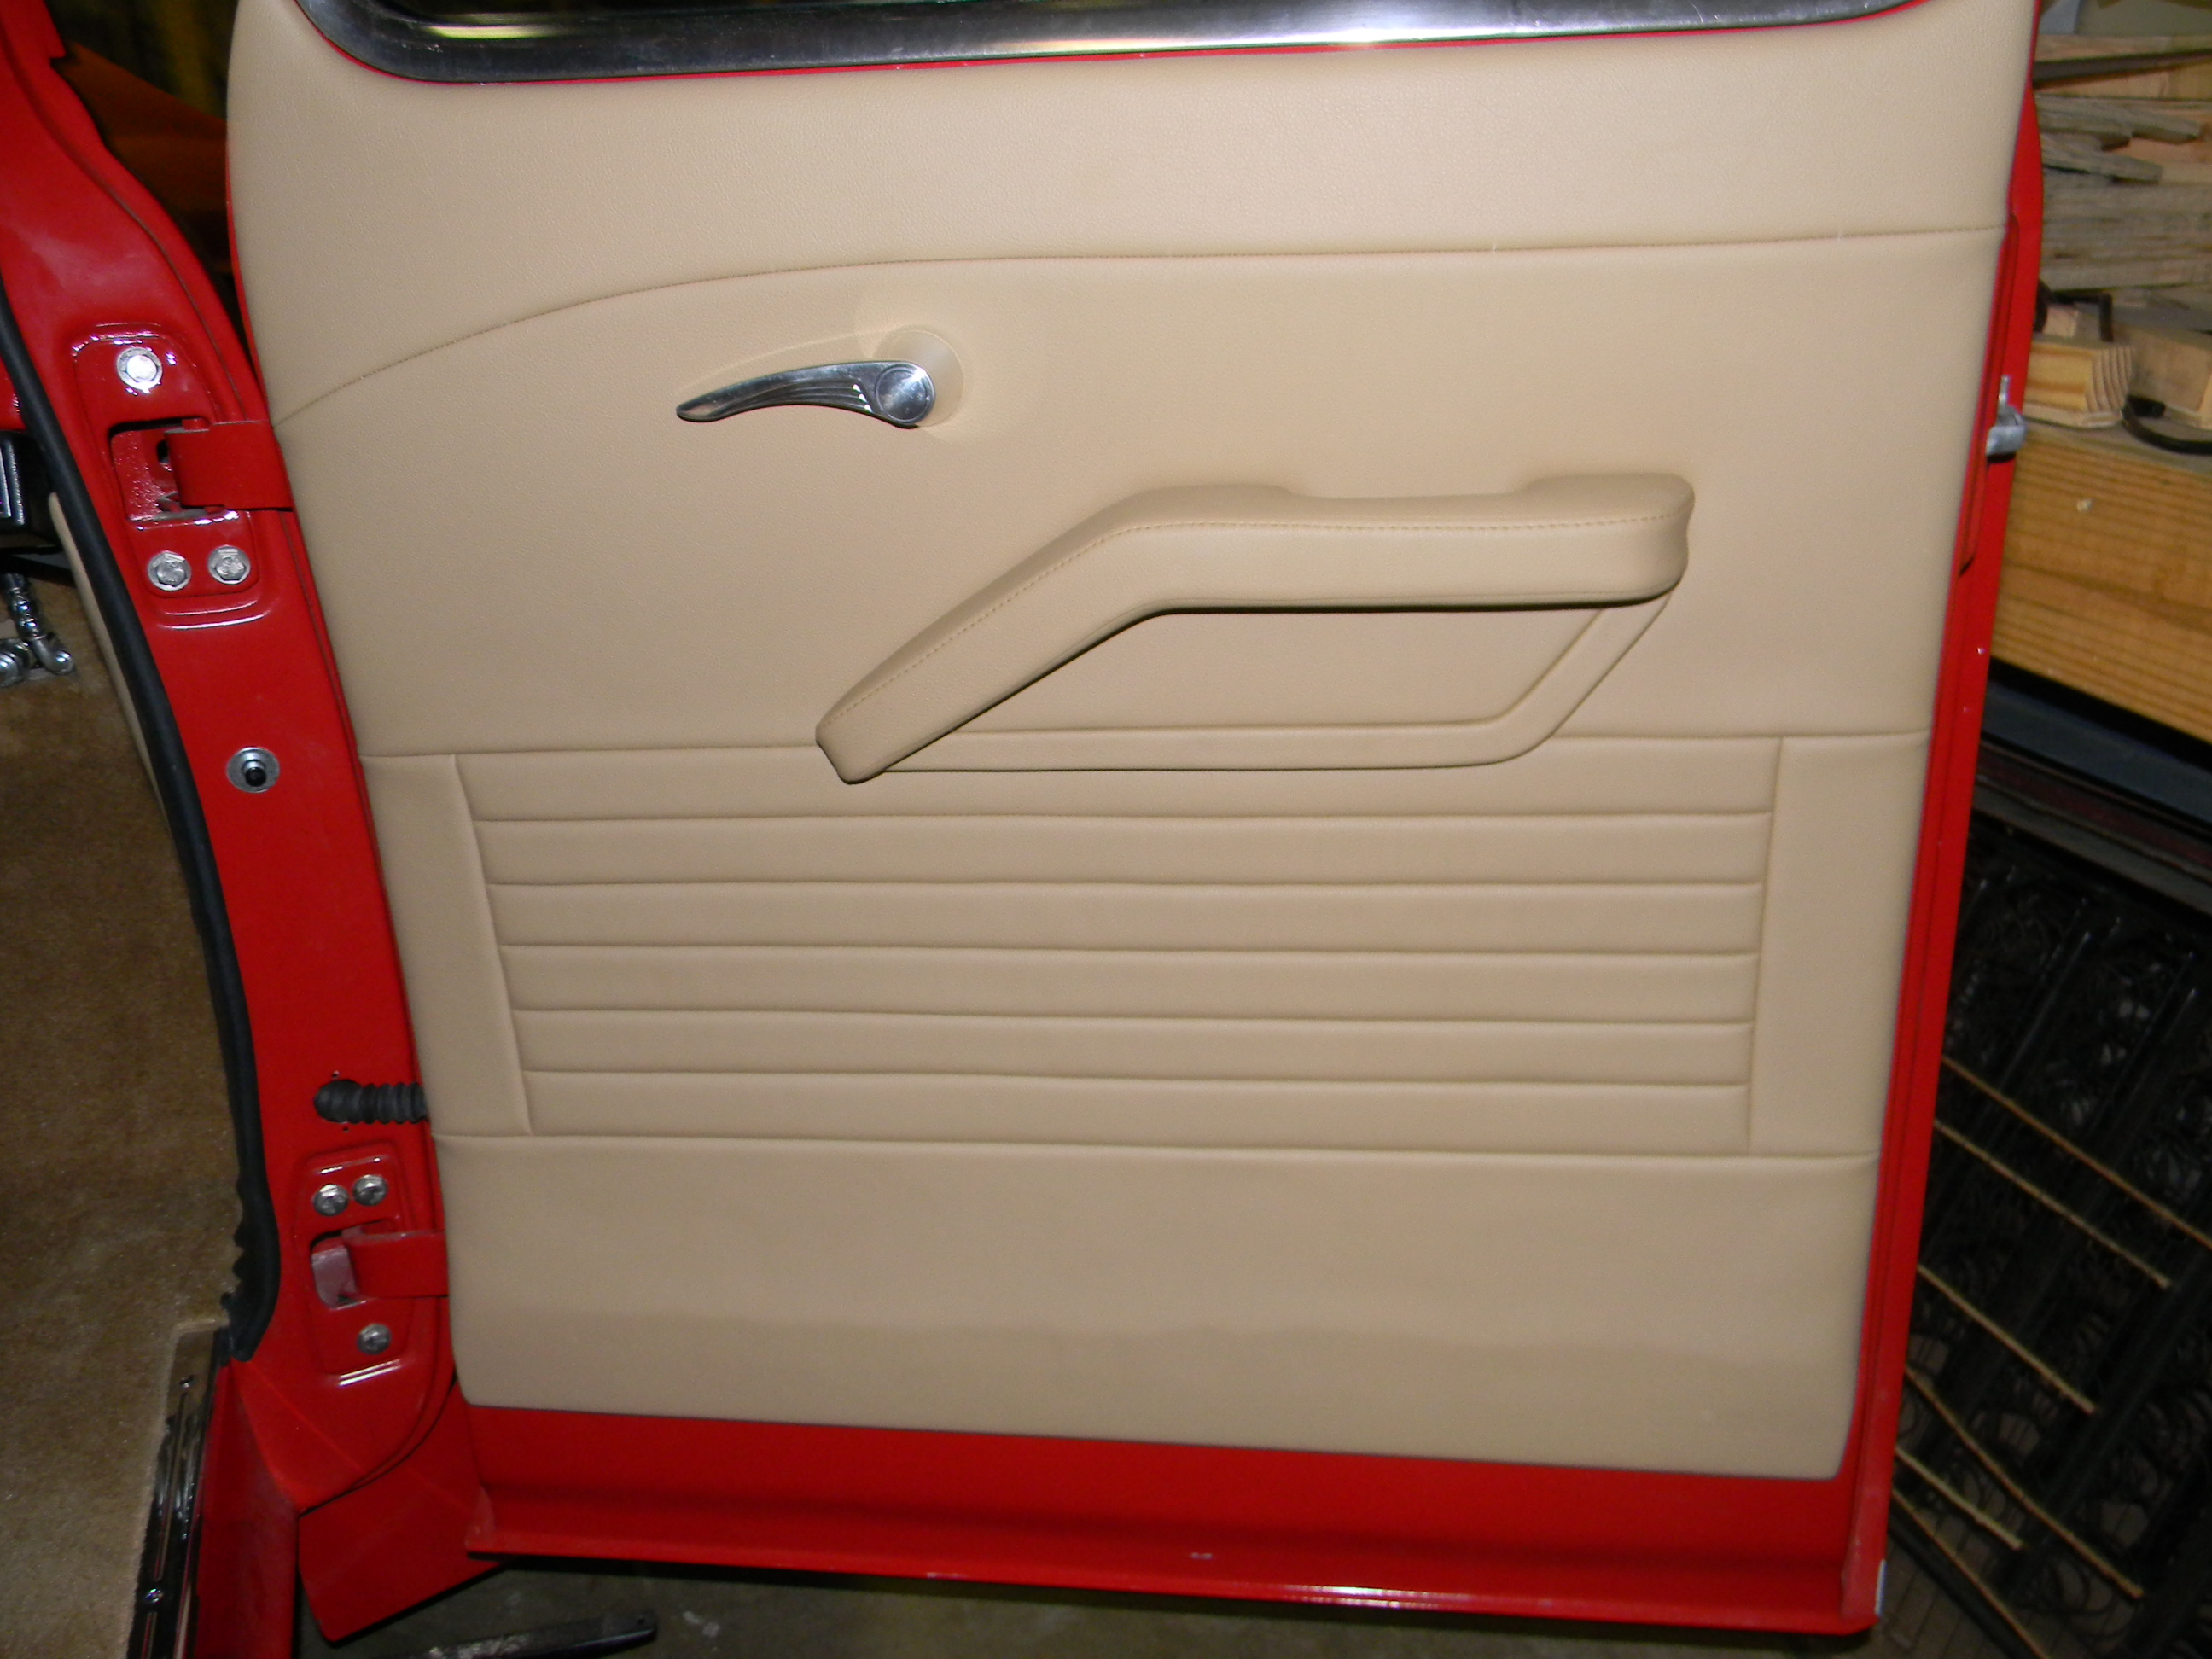 upholstery truck car rods up s frank chevy door interiors pick interior panels ford hot custom